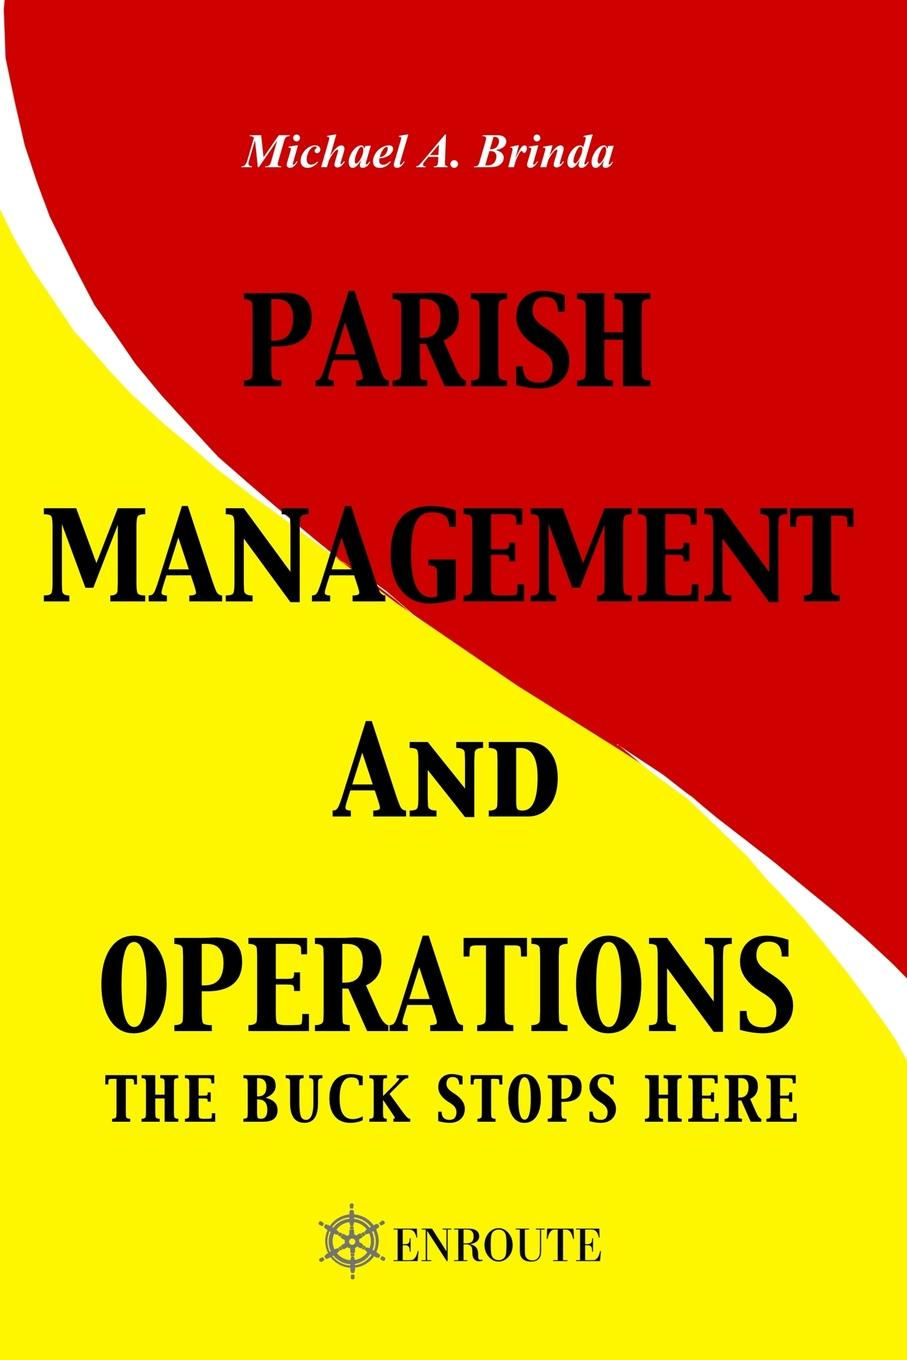 Michael A Brinda Parish Management and Operations. The Buck Stops Here strategic operations and consequences of working capital management